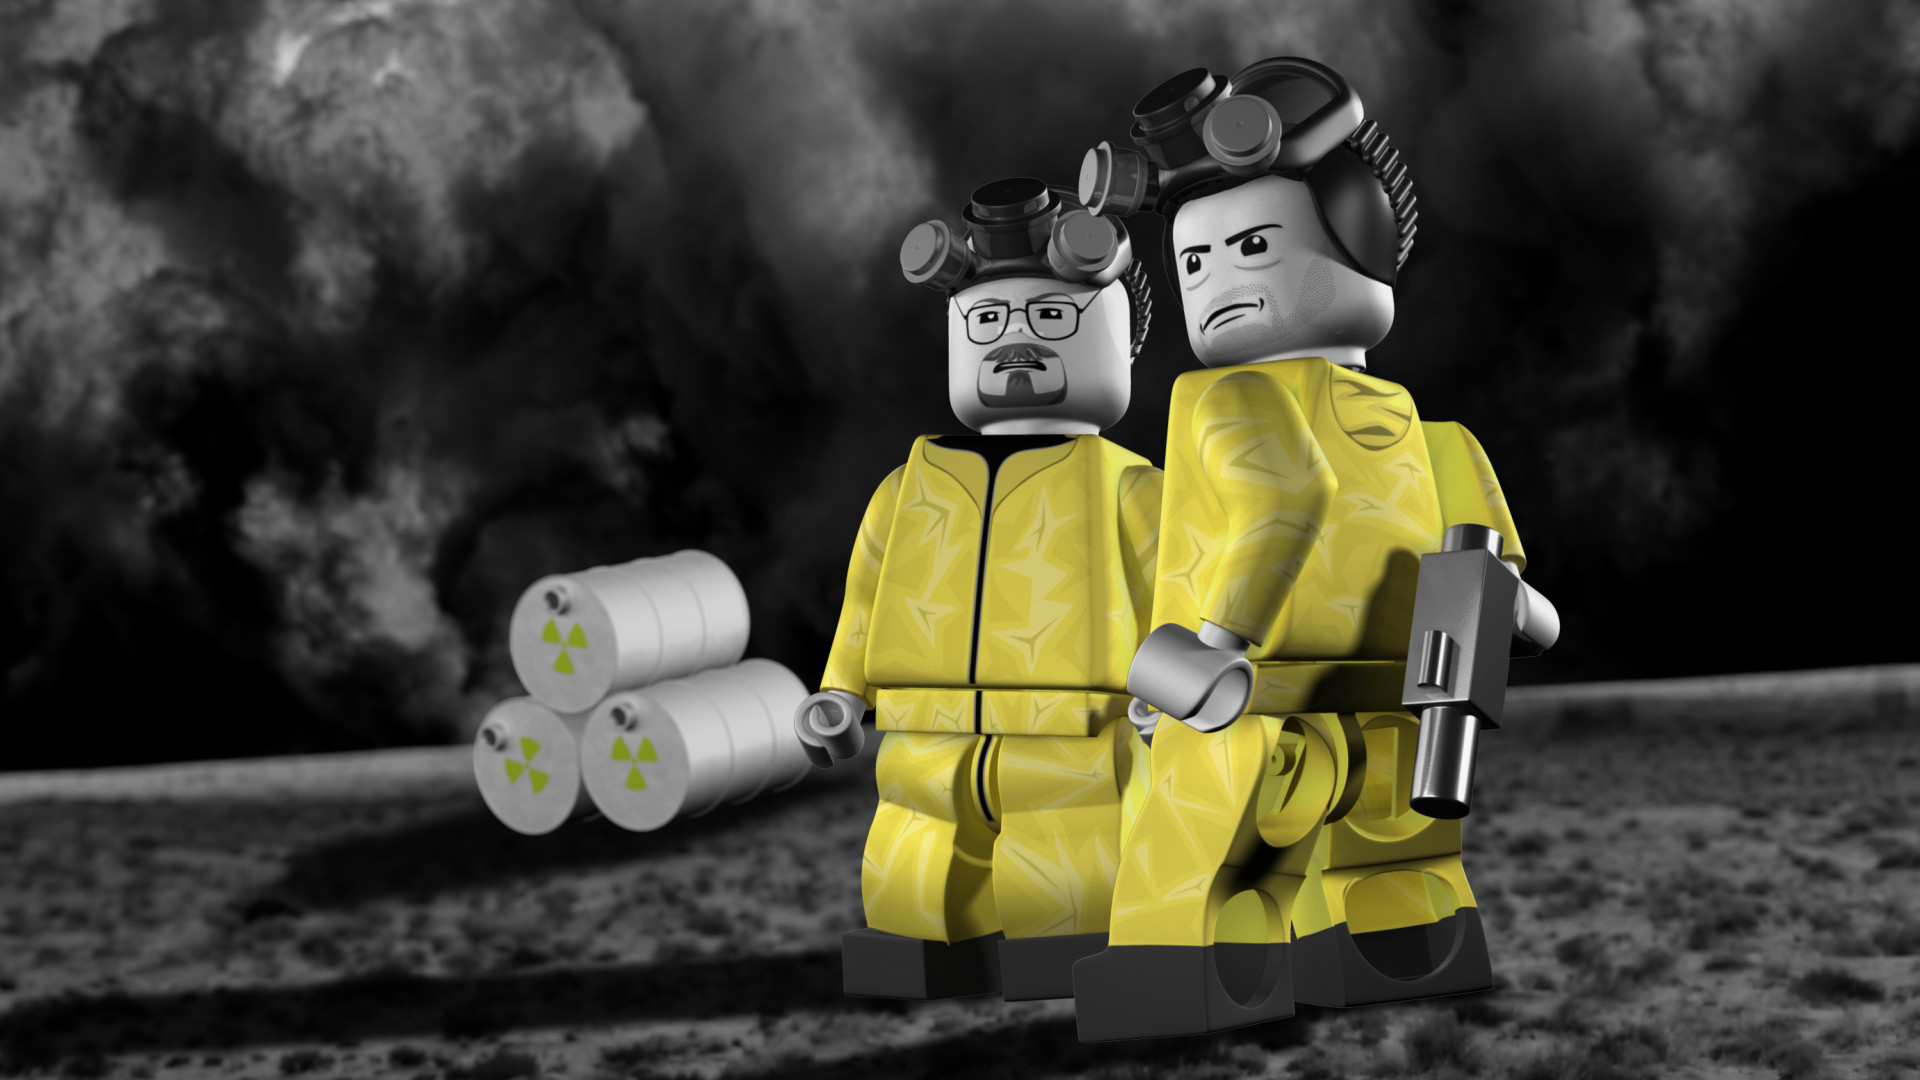 Animator Creates Incredible Lego Breaking Bad Video Game